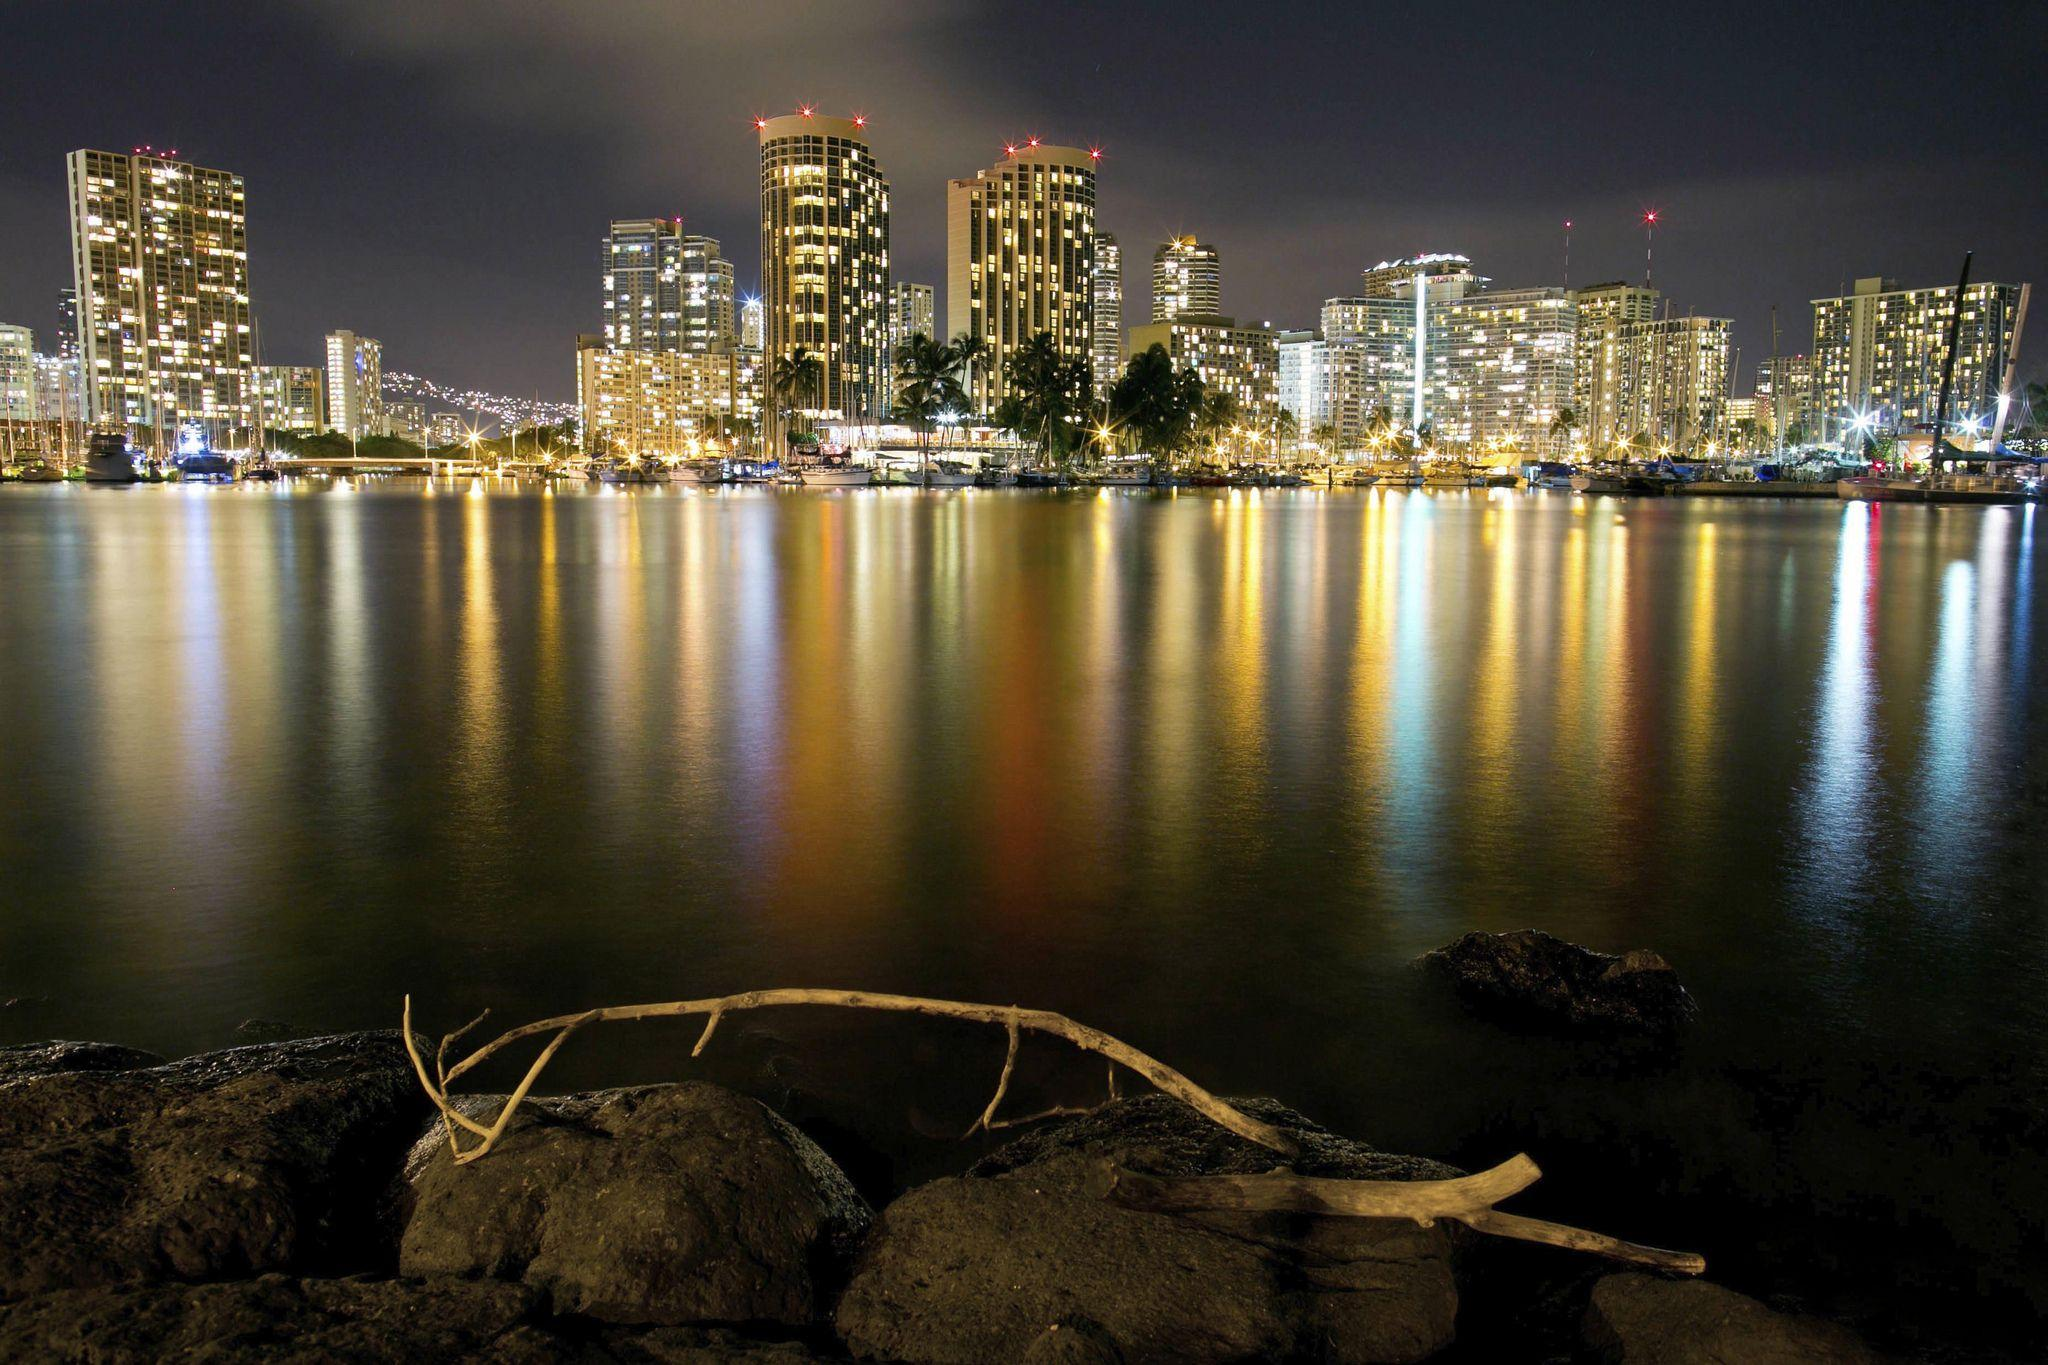 7 Honolulu HD Wallpapers | Backgrounds - Wallpaper Abyss